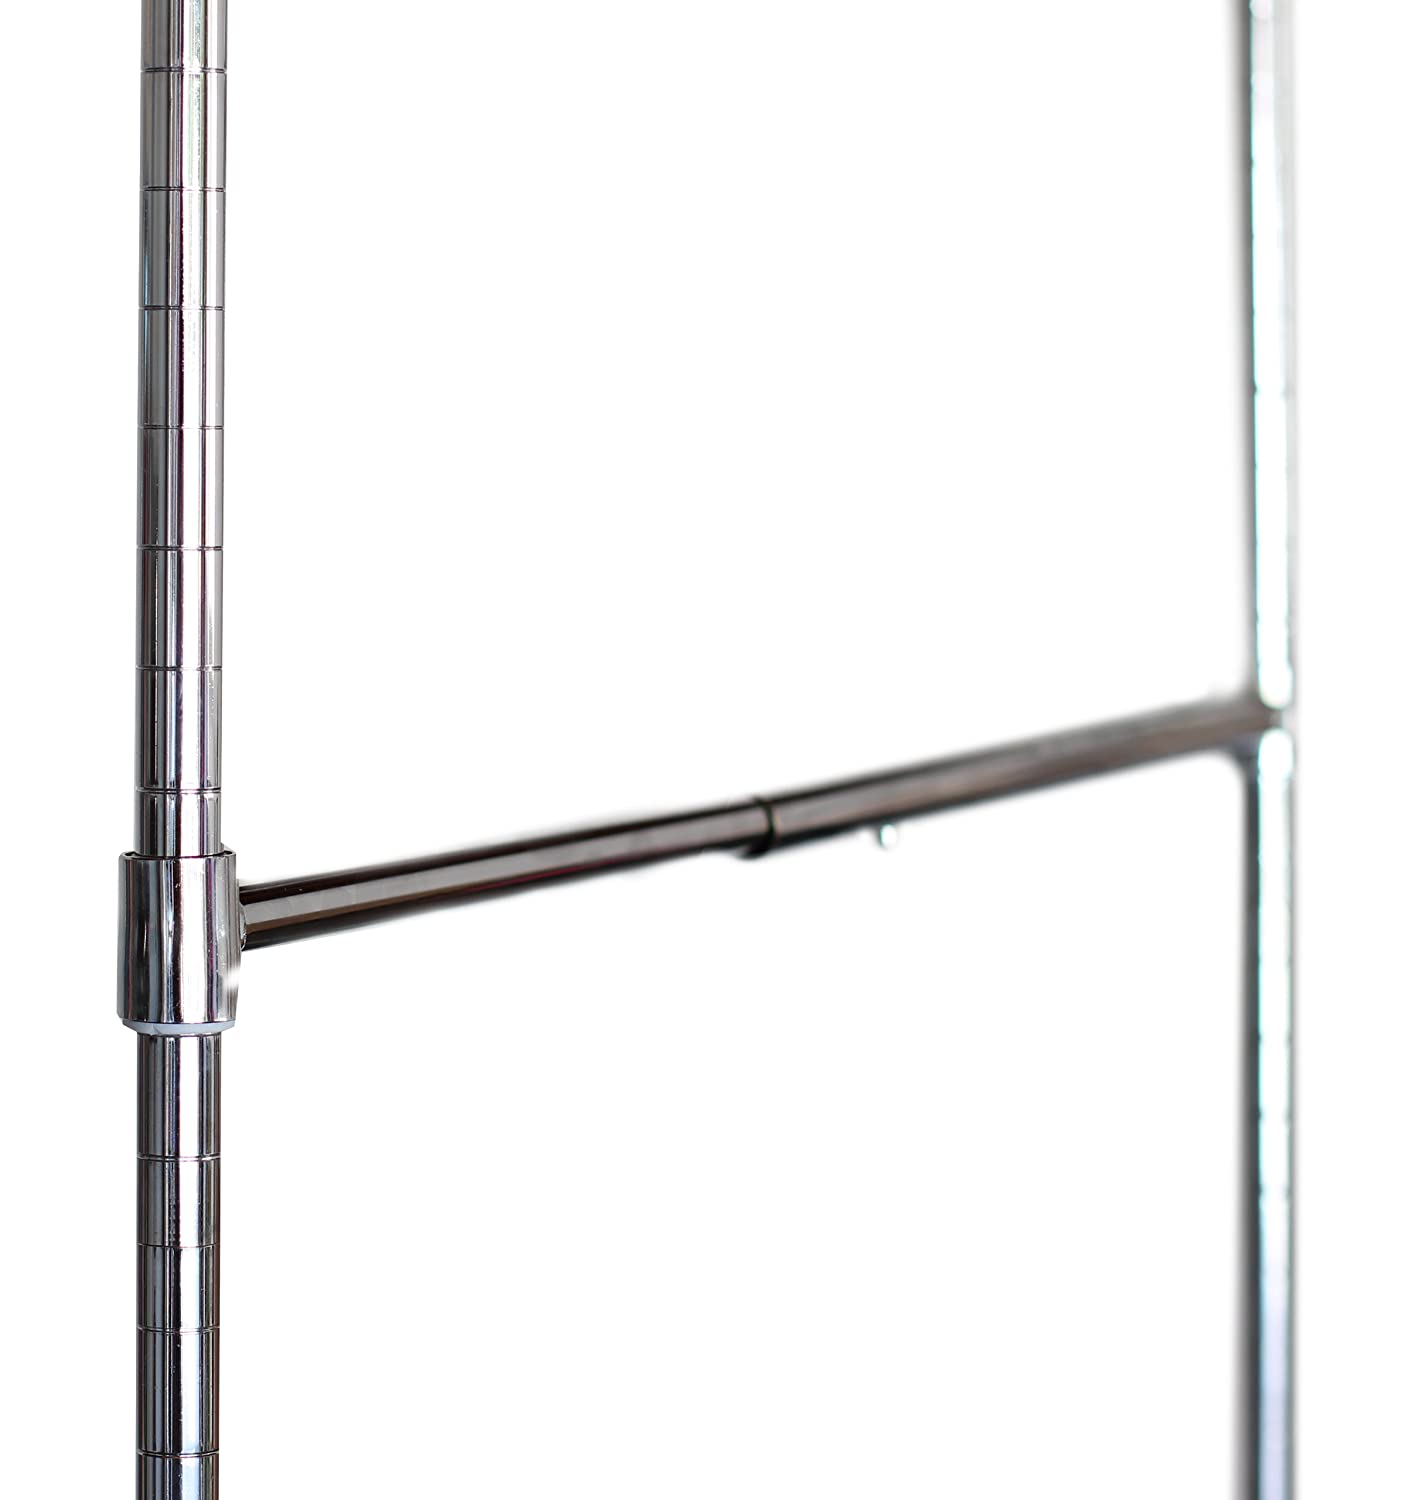 Amazon.com: DecoBros Adjustable Hanging Closet Rod, Chrome: Home U0026  Kitchen